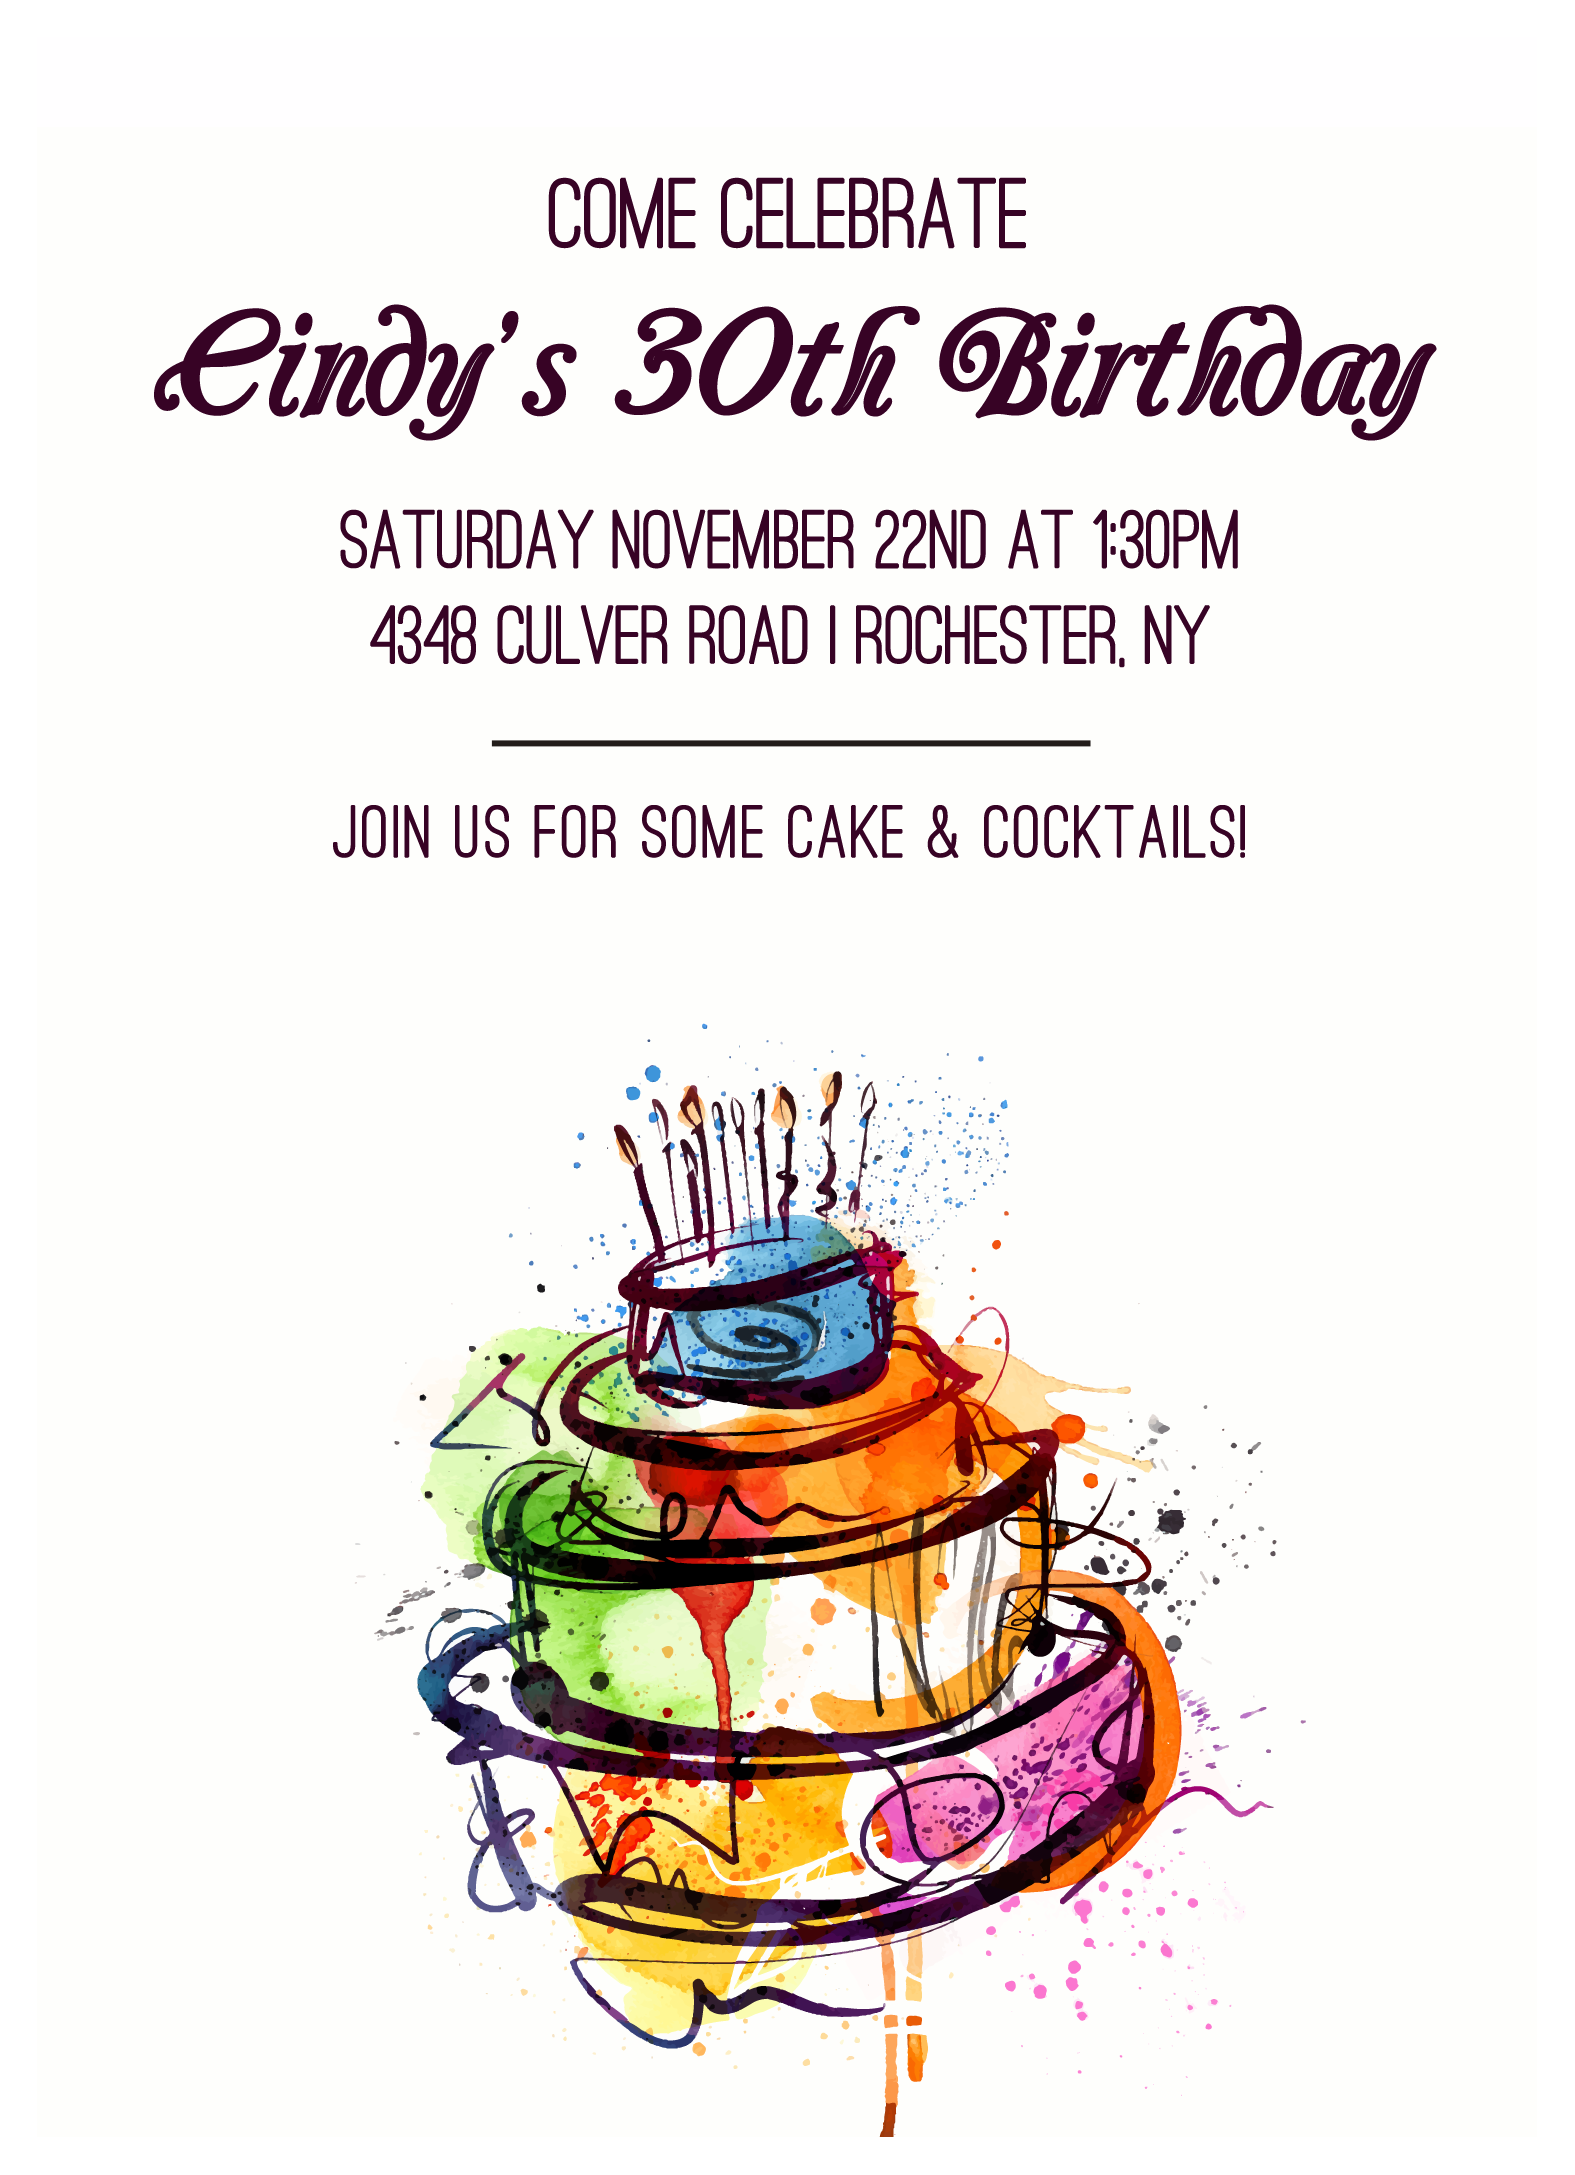 Send out this birthday invitation to invite your friends and